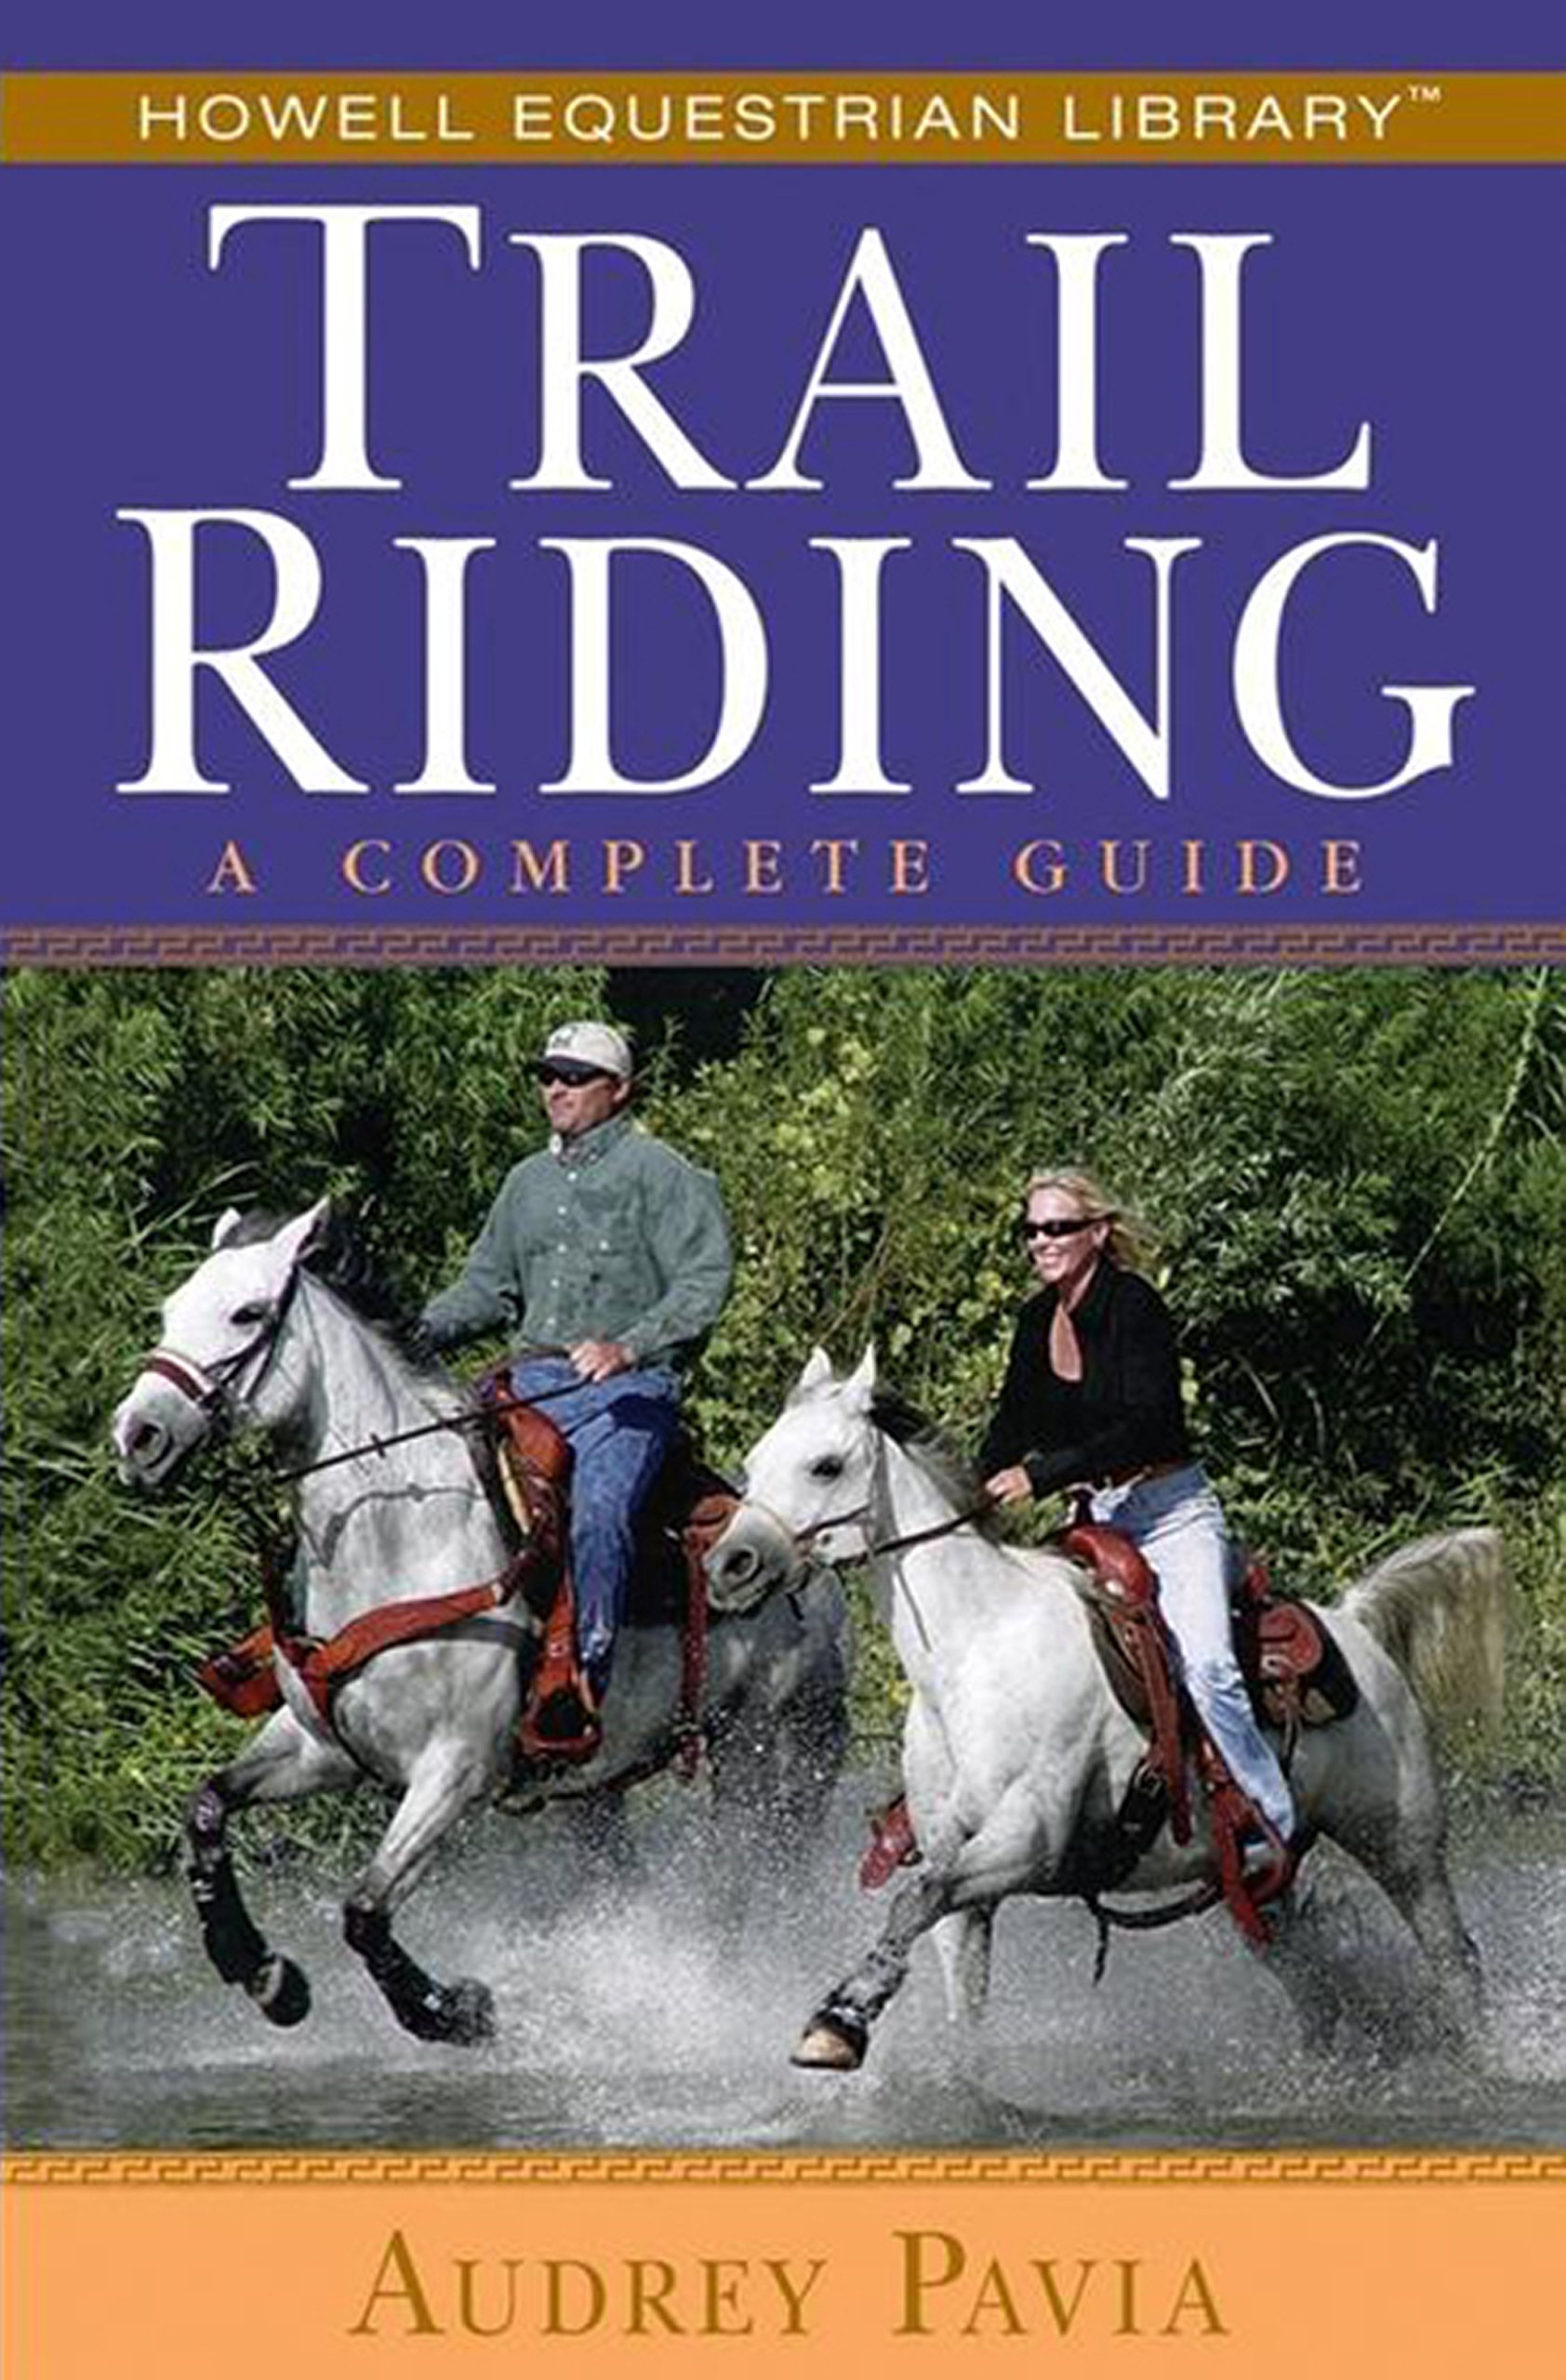 Read Online Trail Riding: A Complete Guide (Howell Equestrian Library (Paperback)) PDF